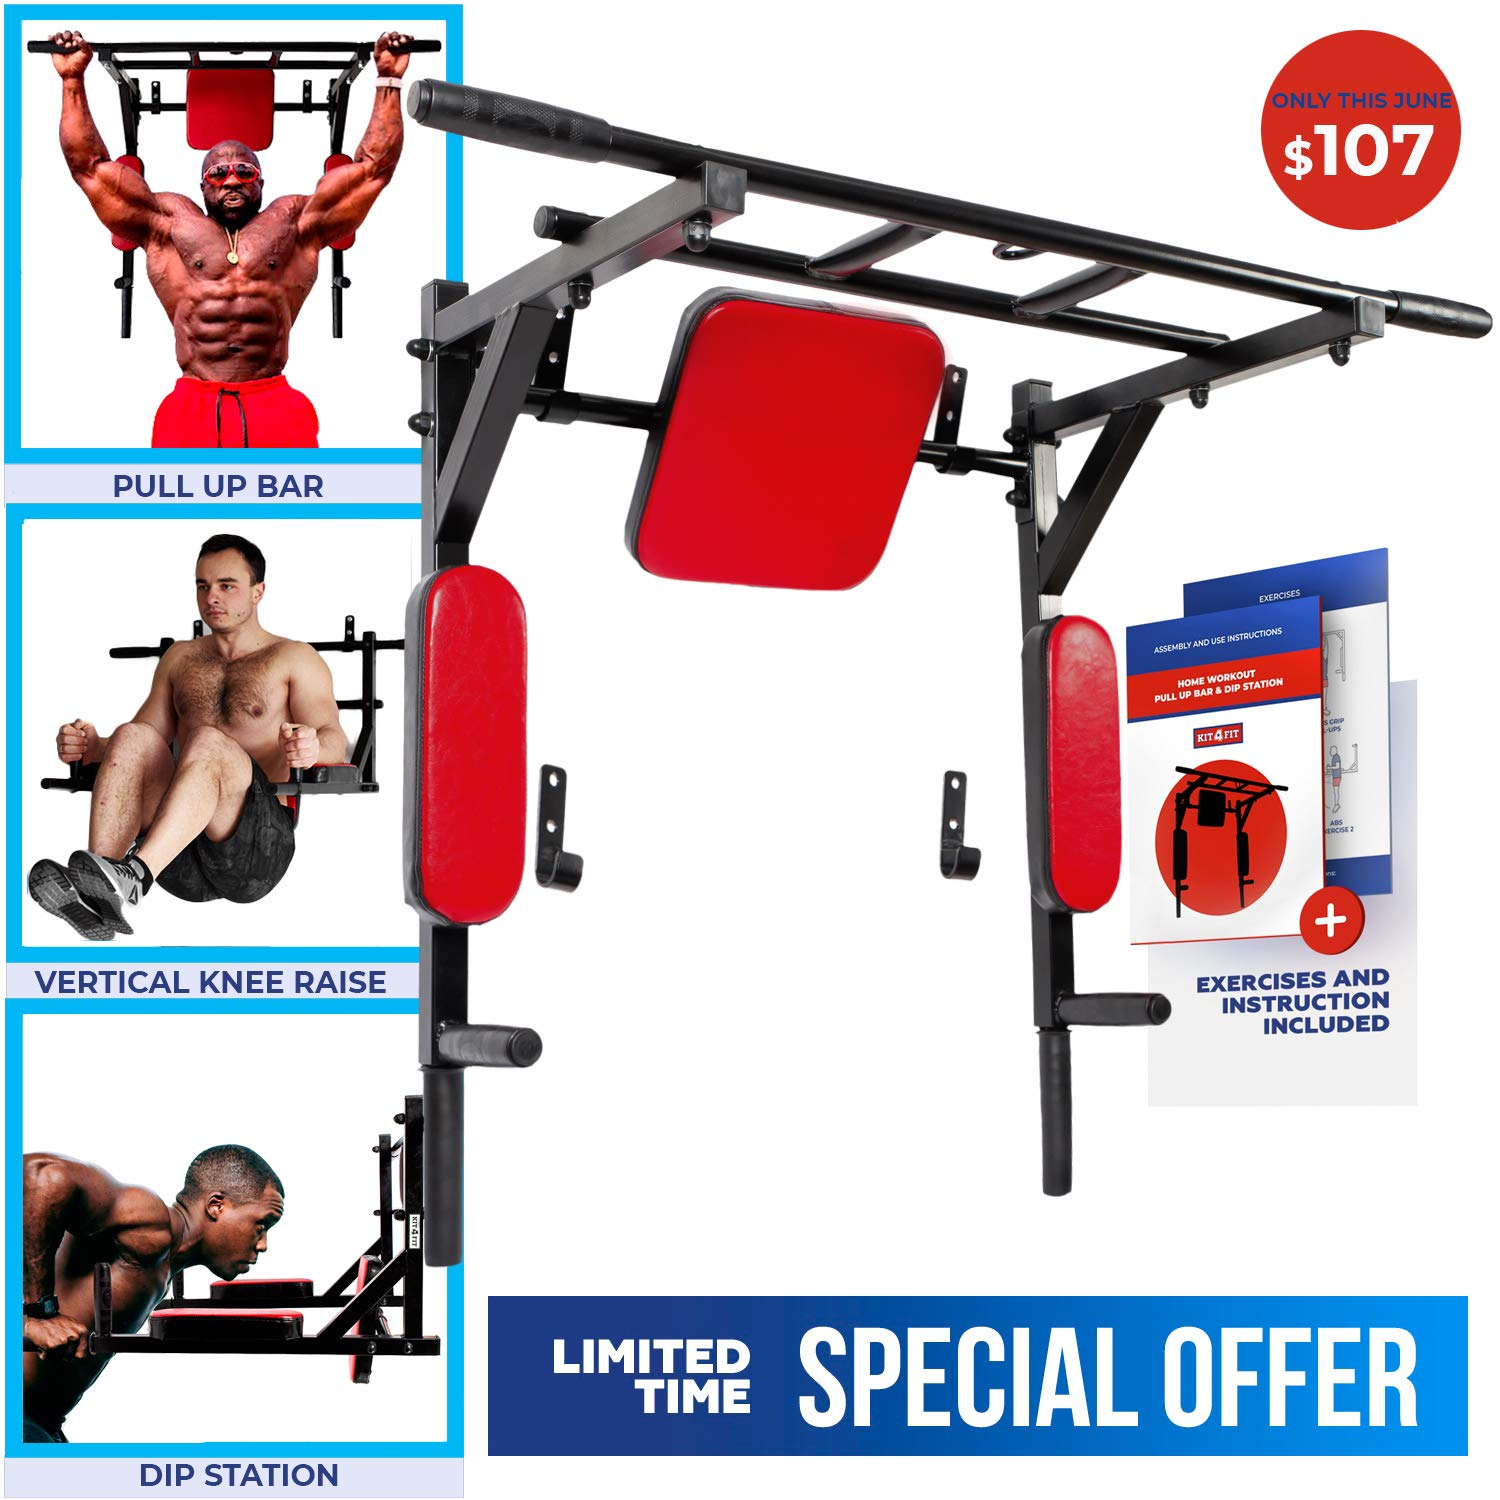 Wall Mounted Pull Up Bar and Dip Station with Vertical Knee Raise Station Limited TIME Special Price Indoor Home Exercise Equipment for Men and Woman Great for Workout and Fitness (Red)